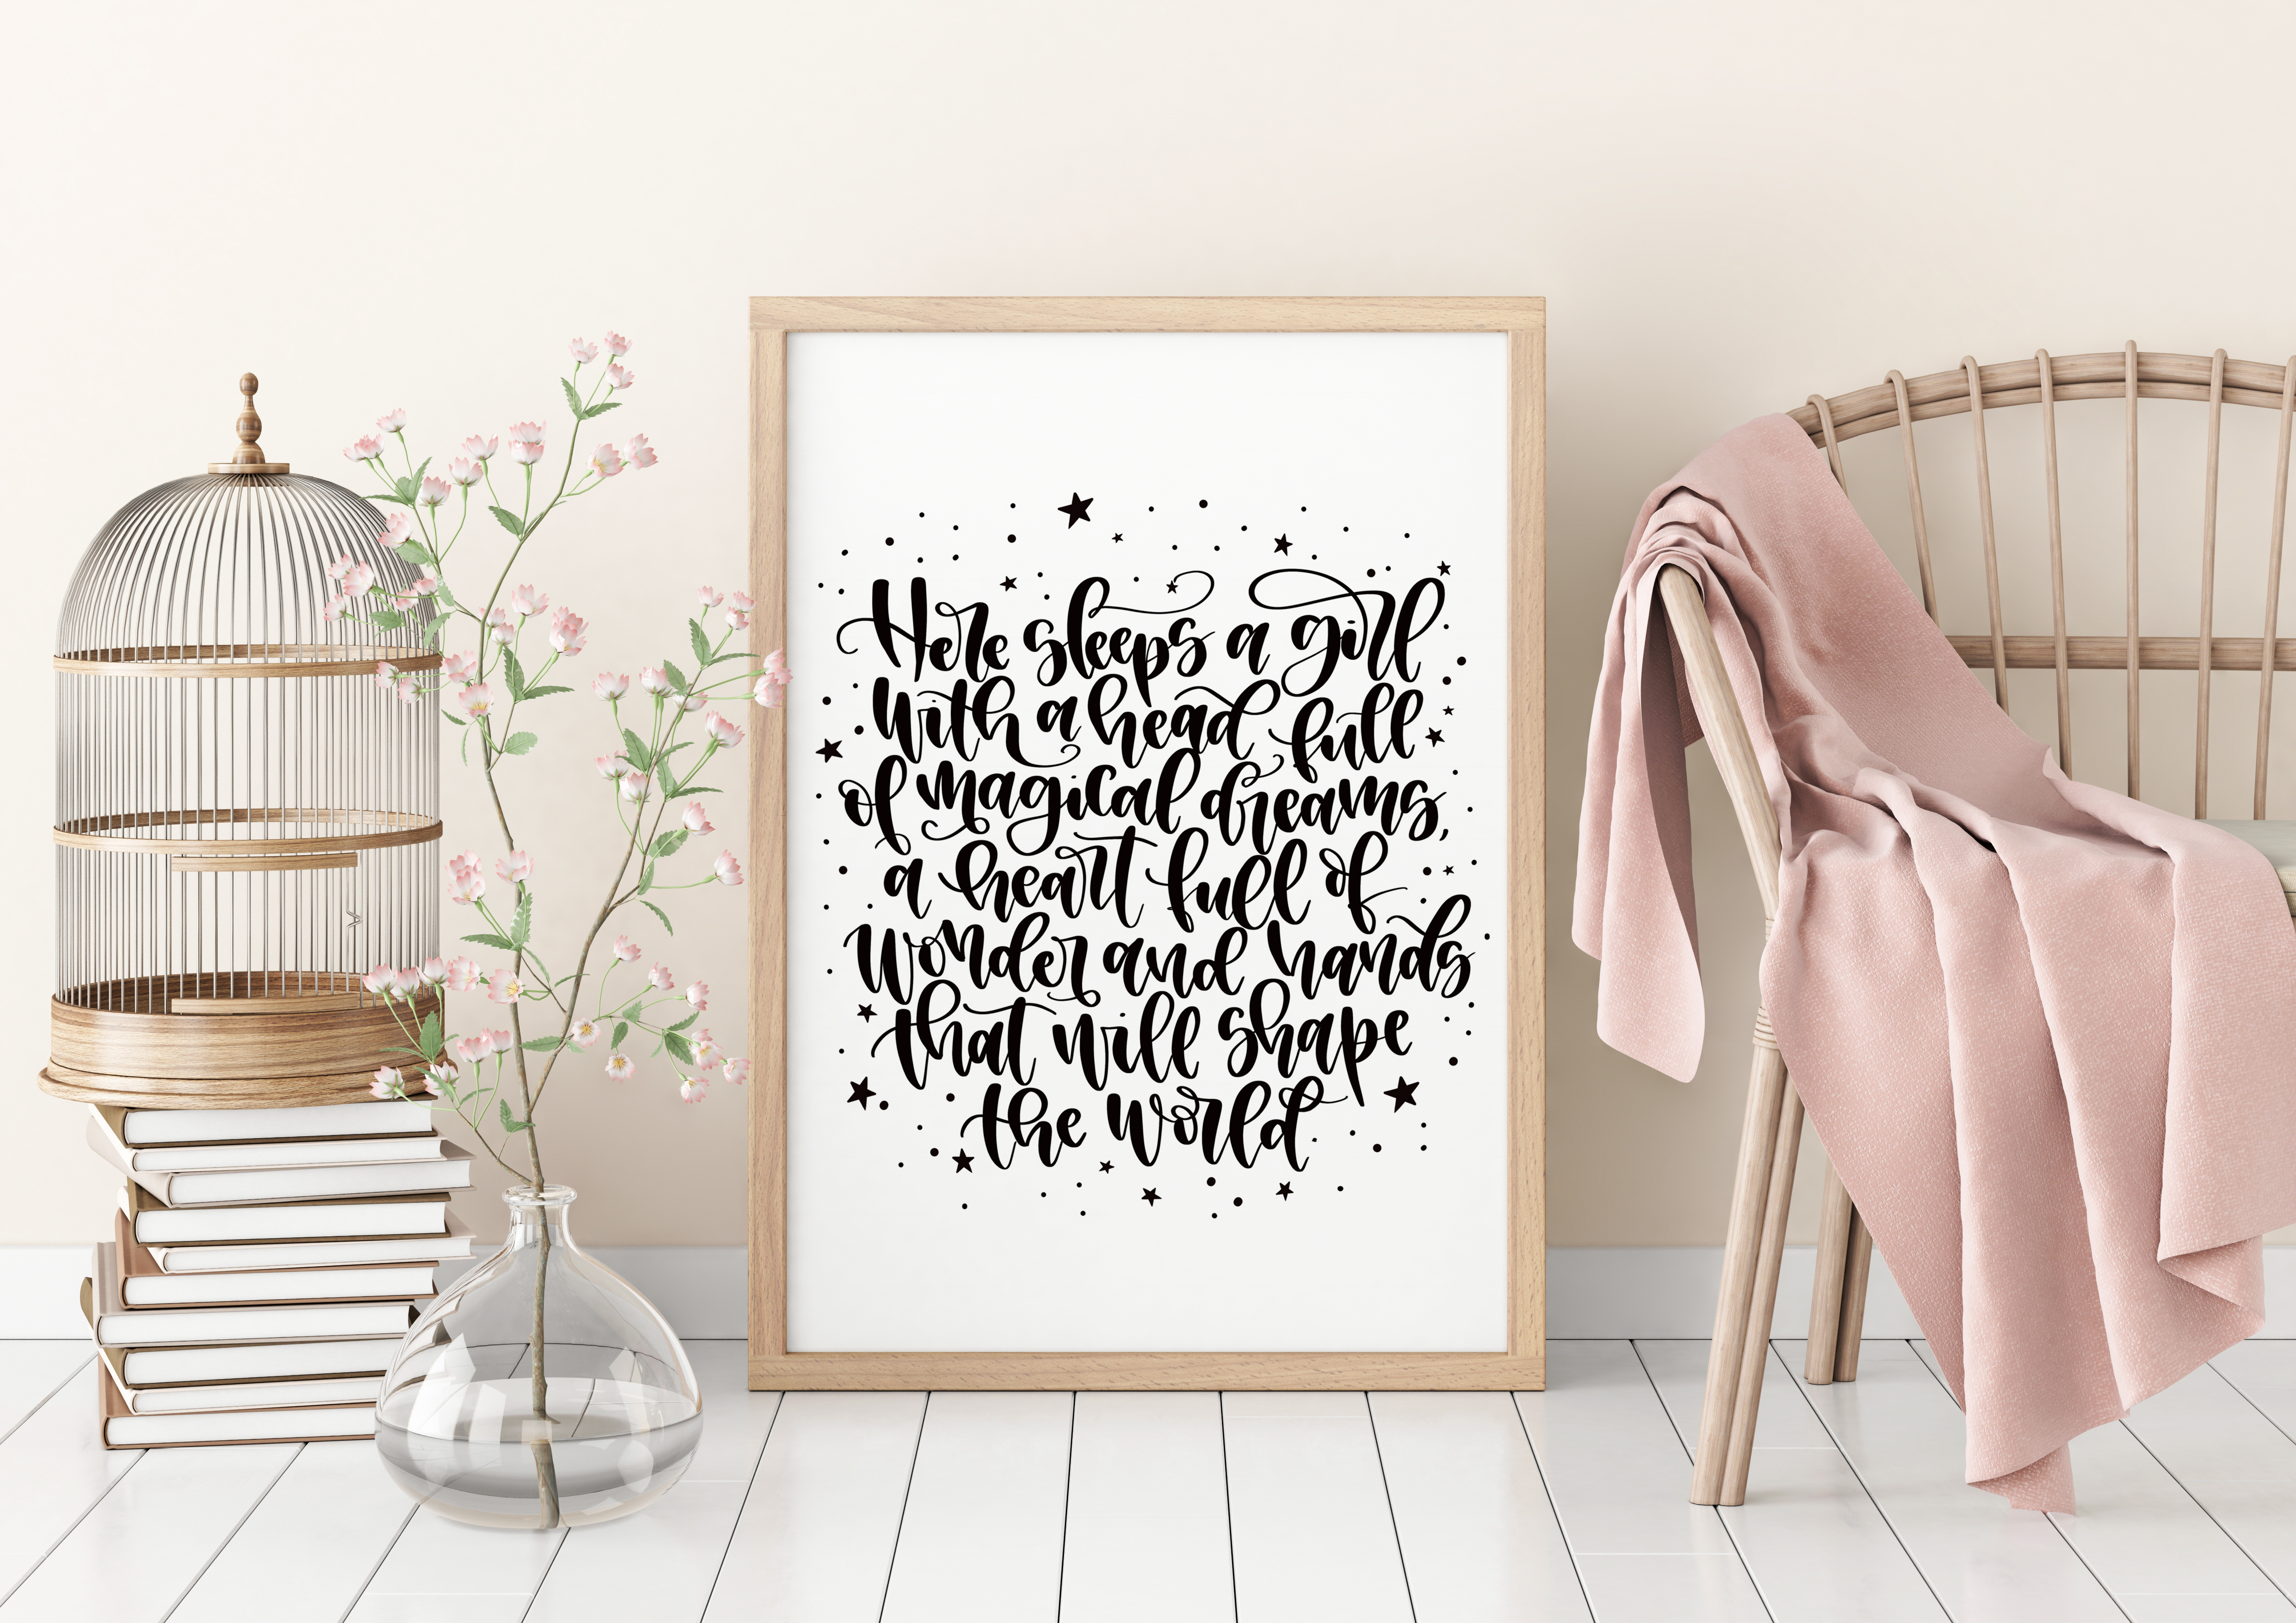 Unique framed prints on ArtWOW: Here Sleeps A Girl by designer Teeny Letters